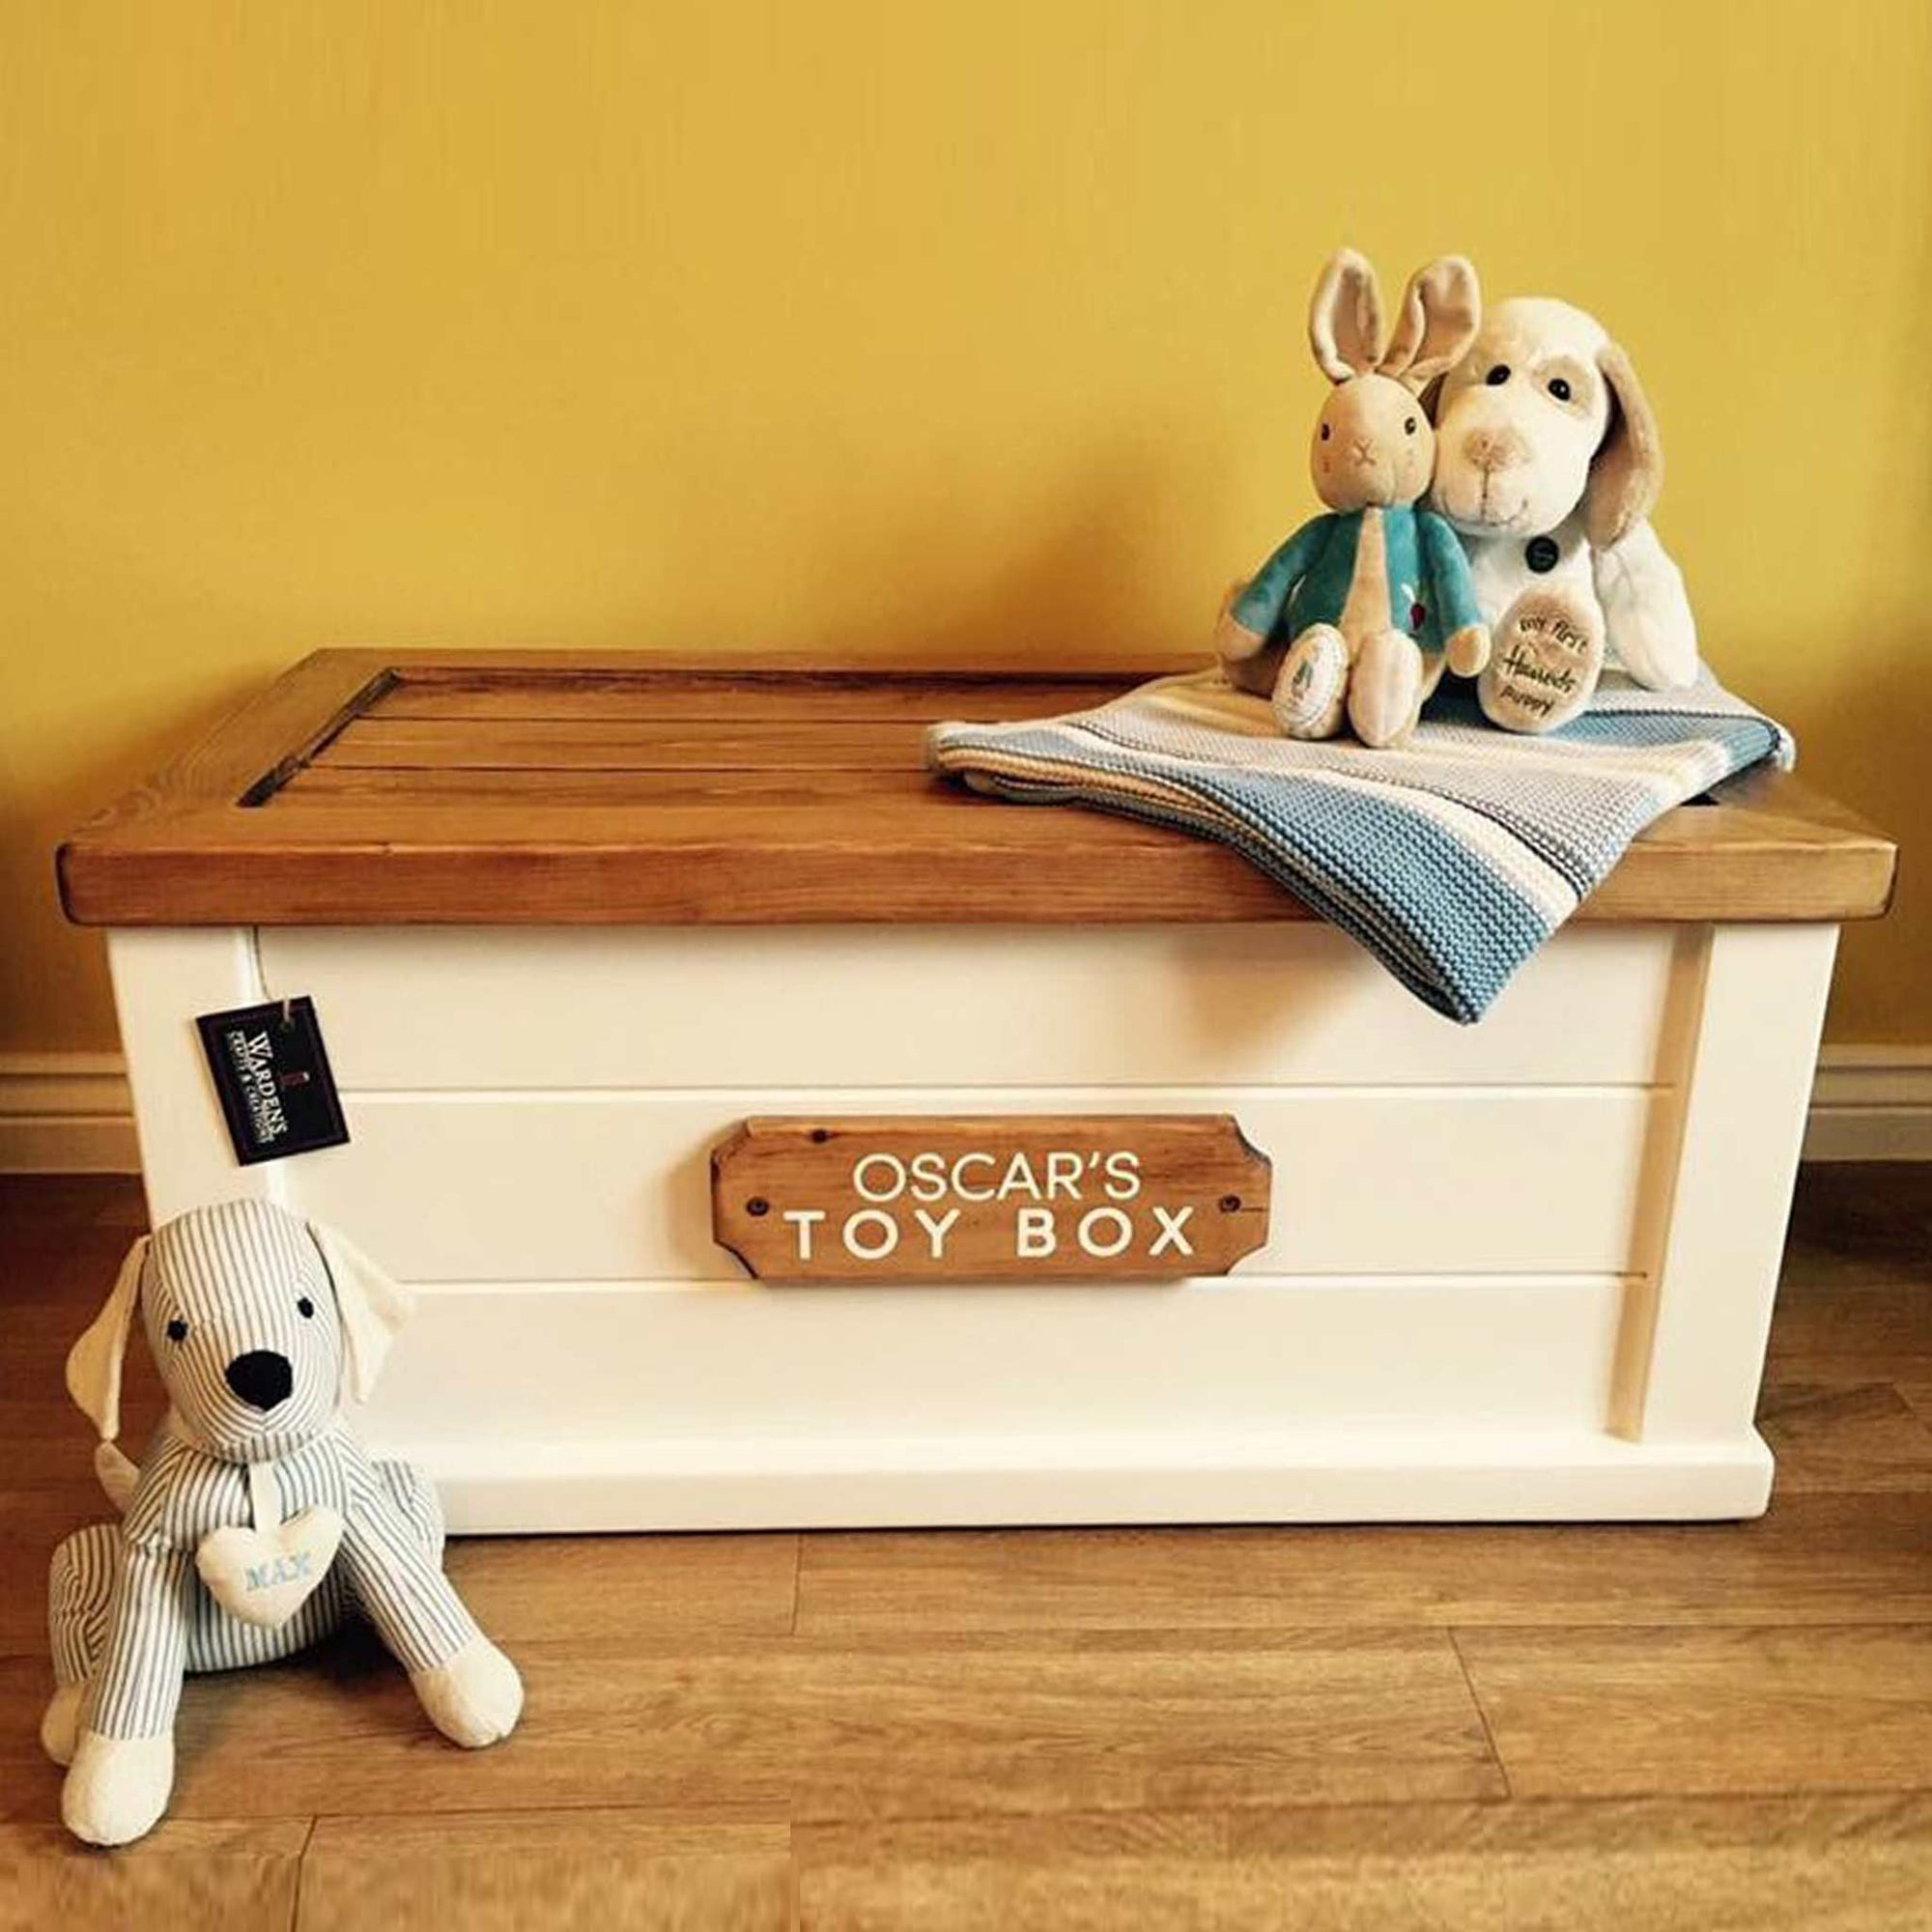 Warden's Crafts & Creations - Personalised Toy Box - Medium - Paint & Wax